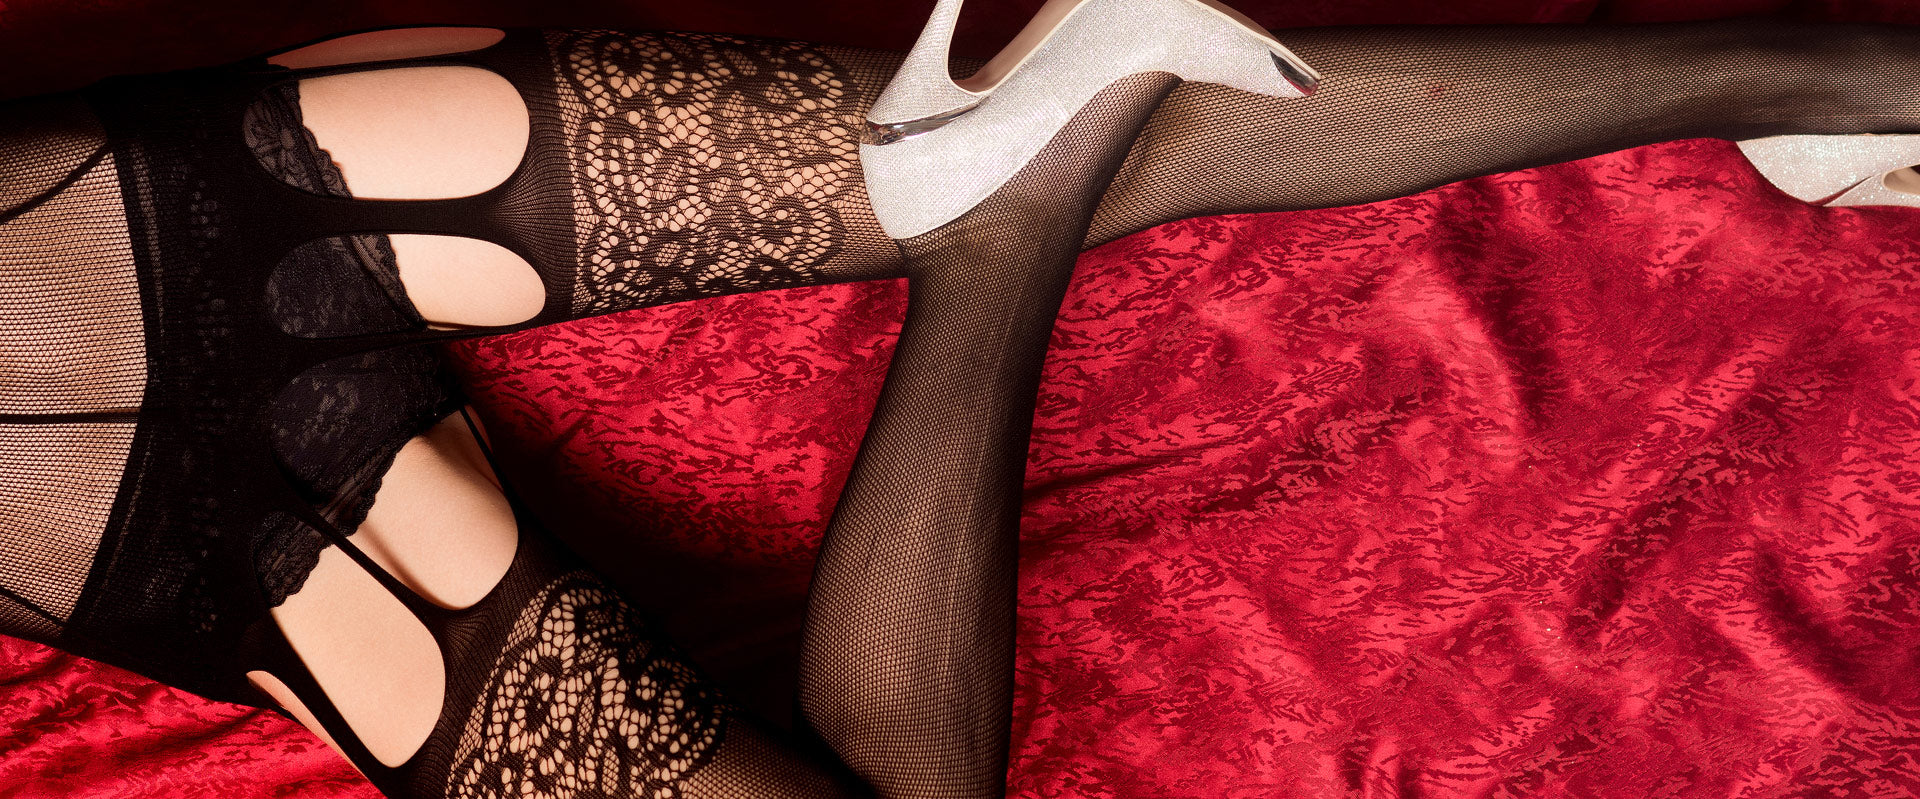 Body-Stocking Up